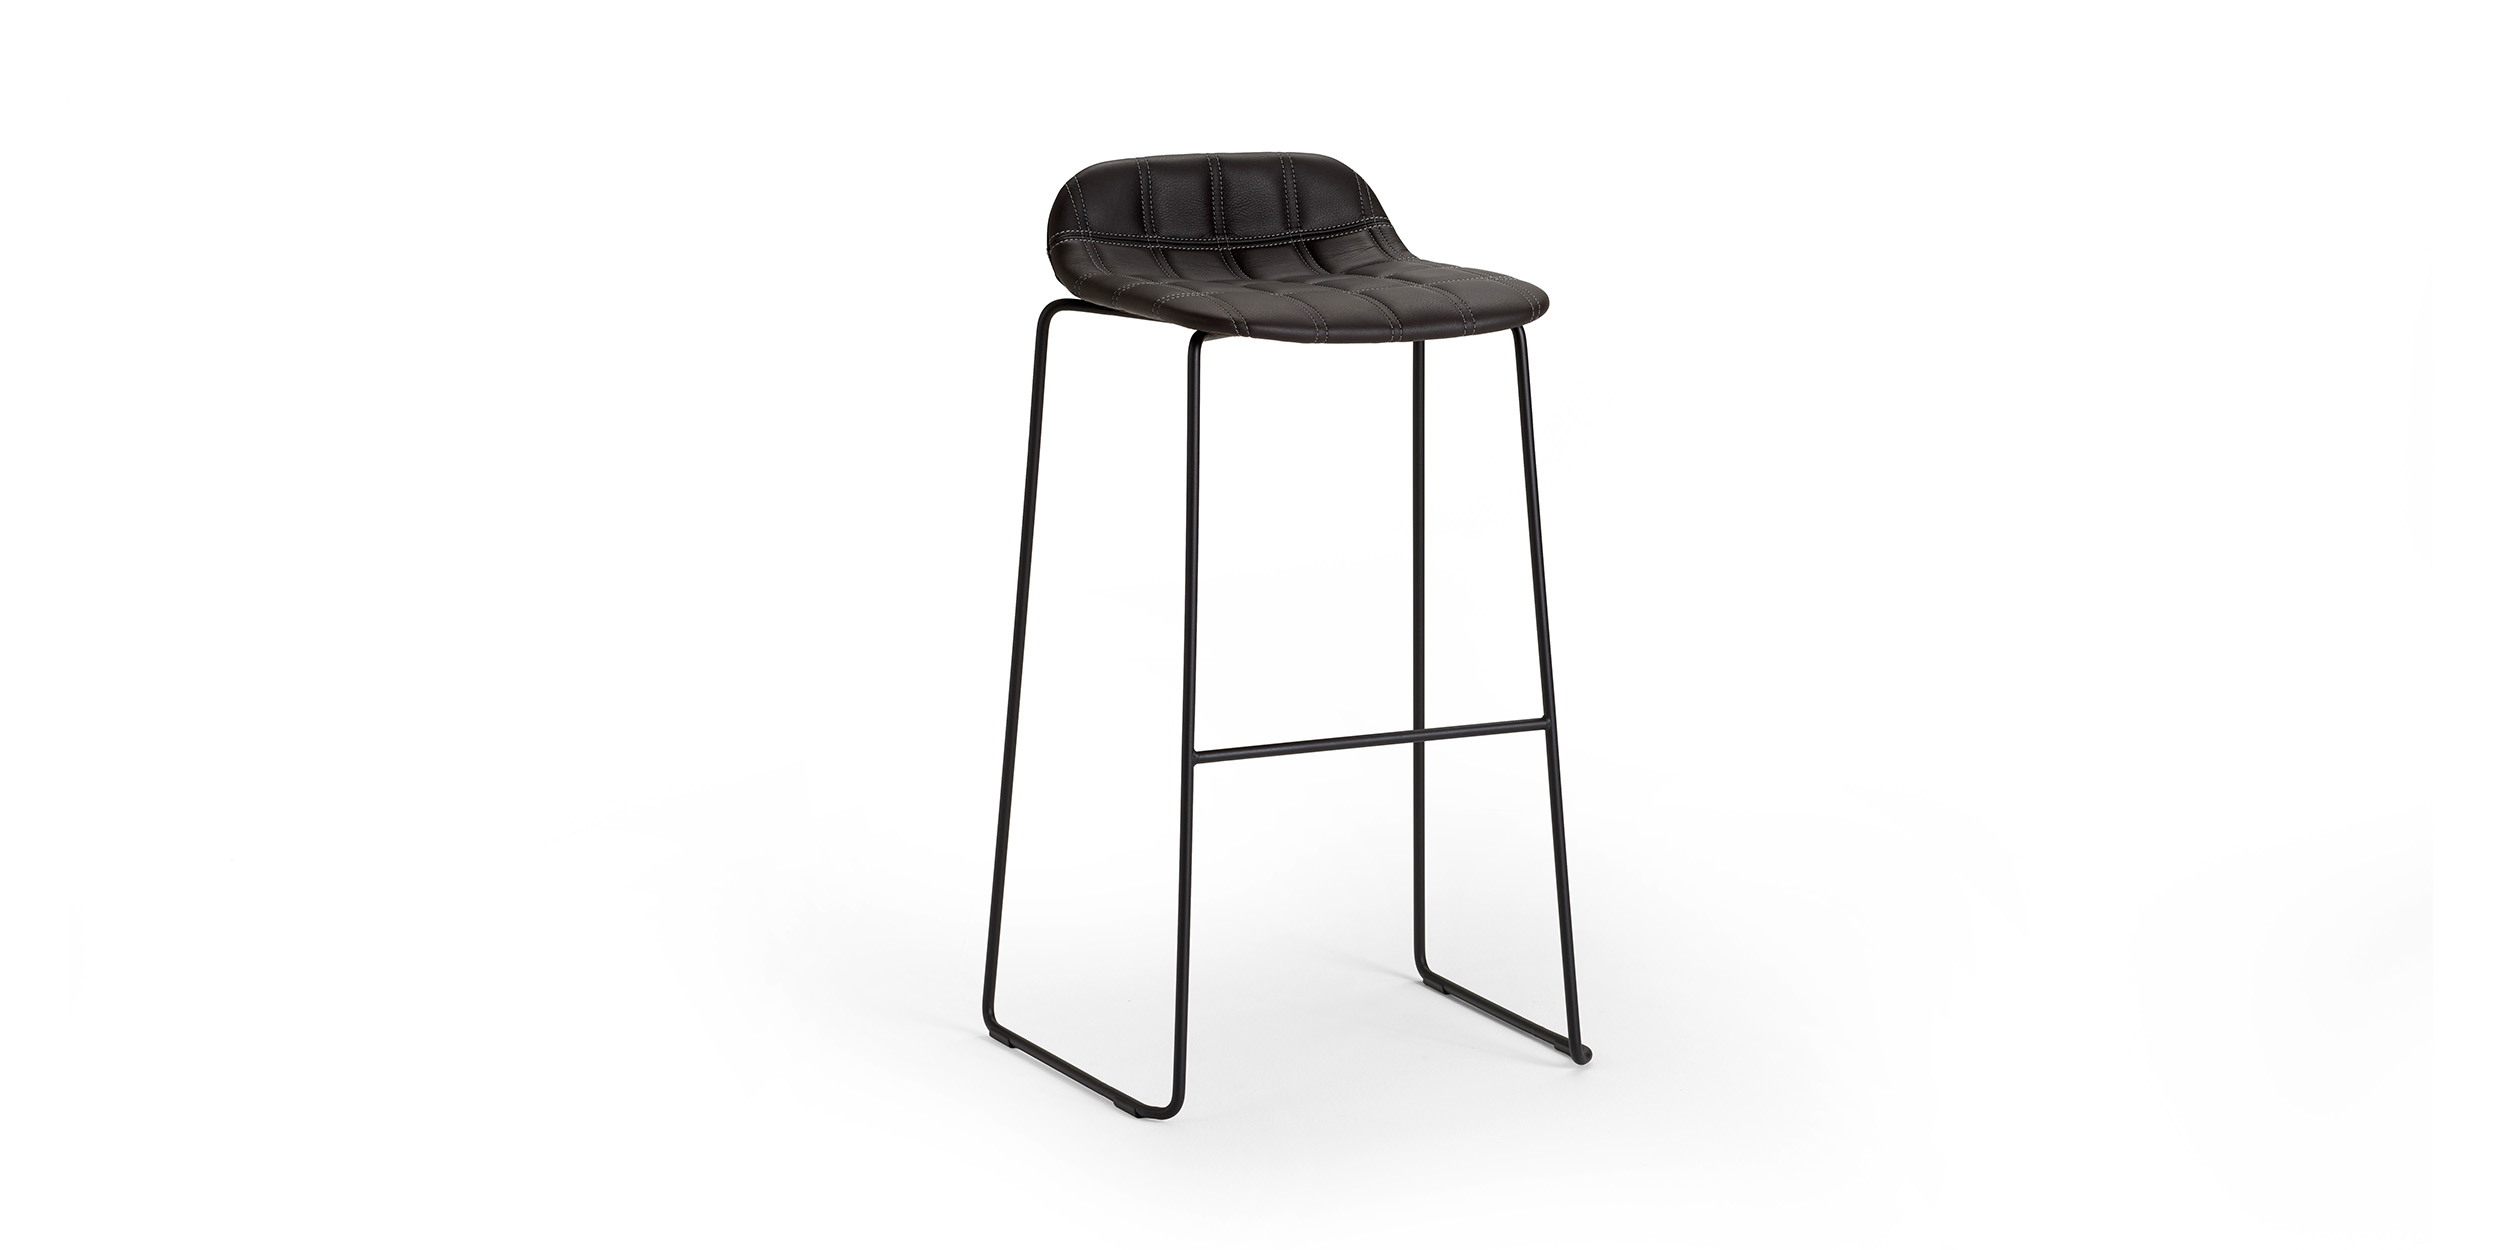 Bop, Bar stool by Knudsen Berg Hindenes